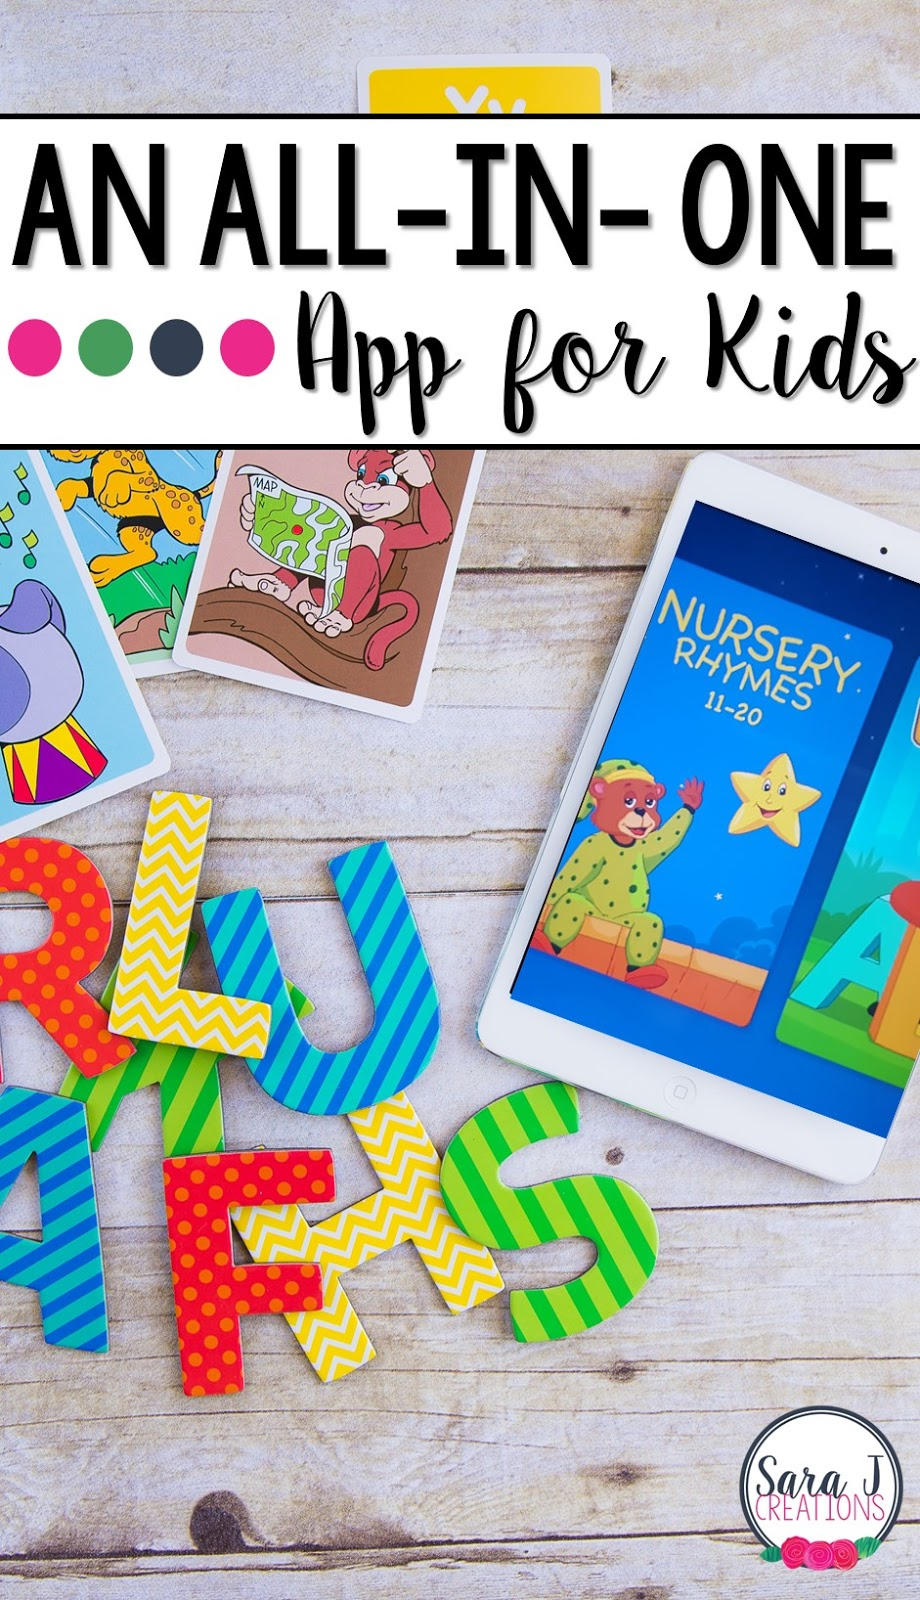 KidloLand is a fun app for toddlers and preschools that works on everything from counting to colors to letters to nursery rhymes and more.